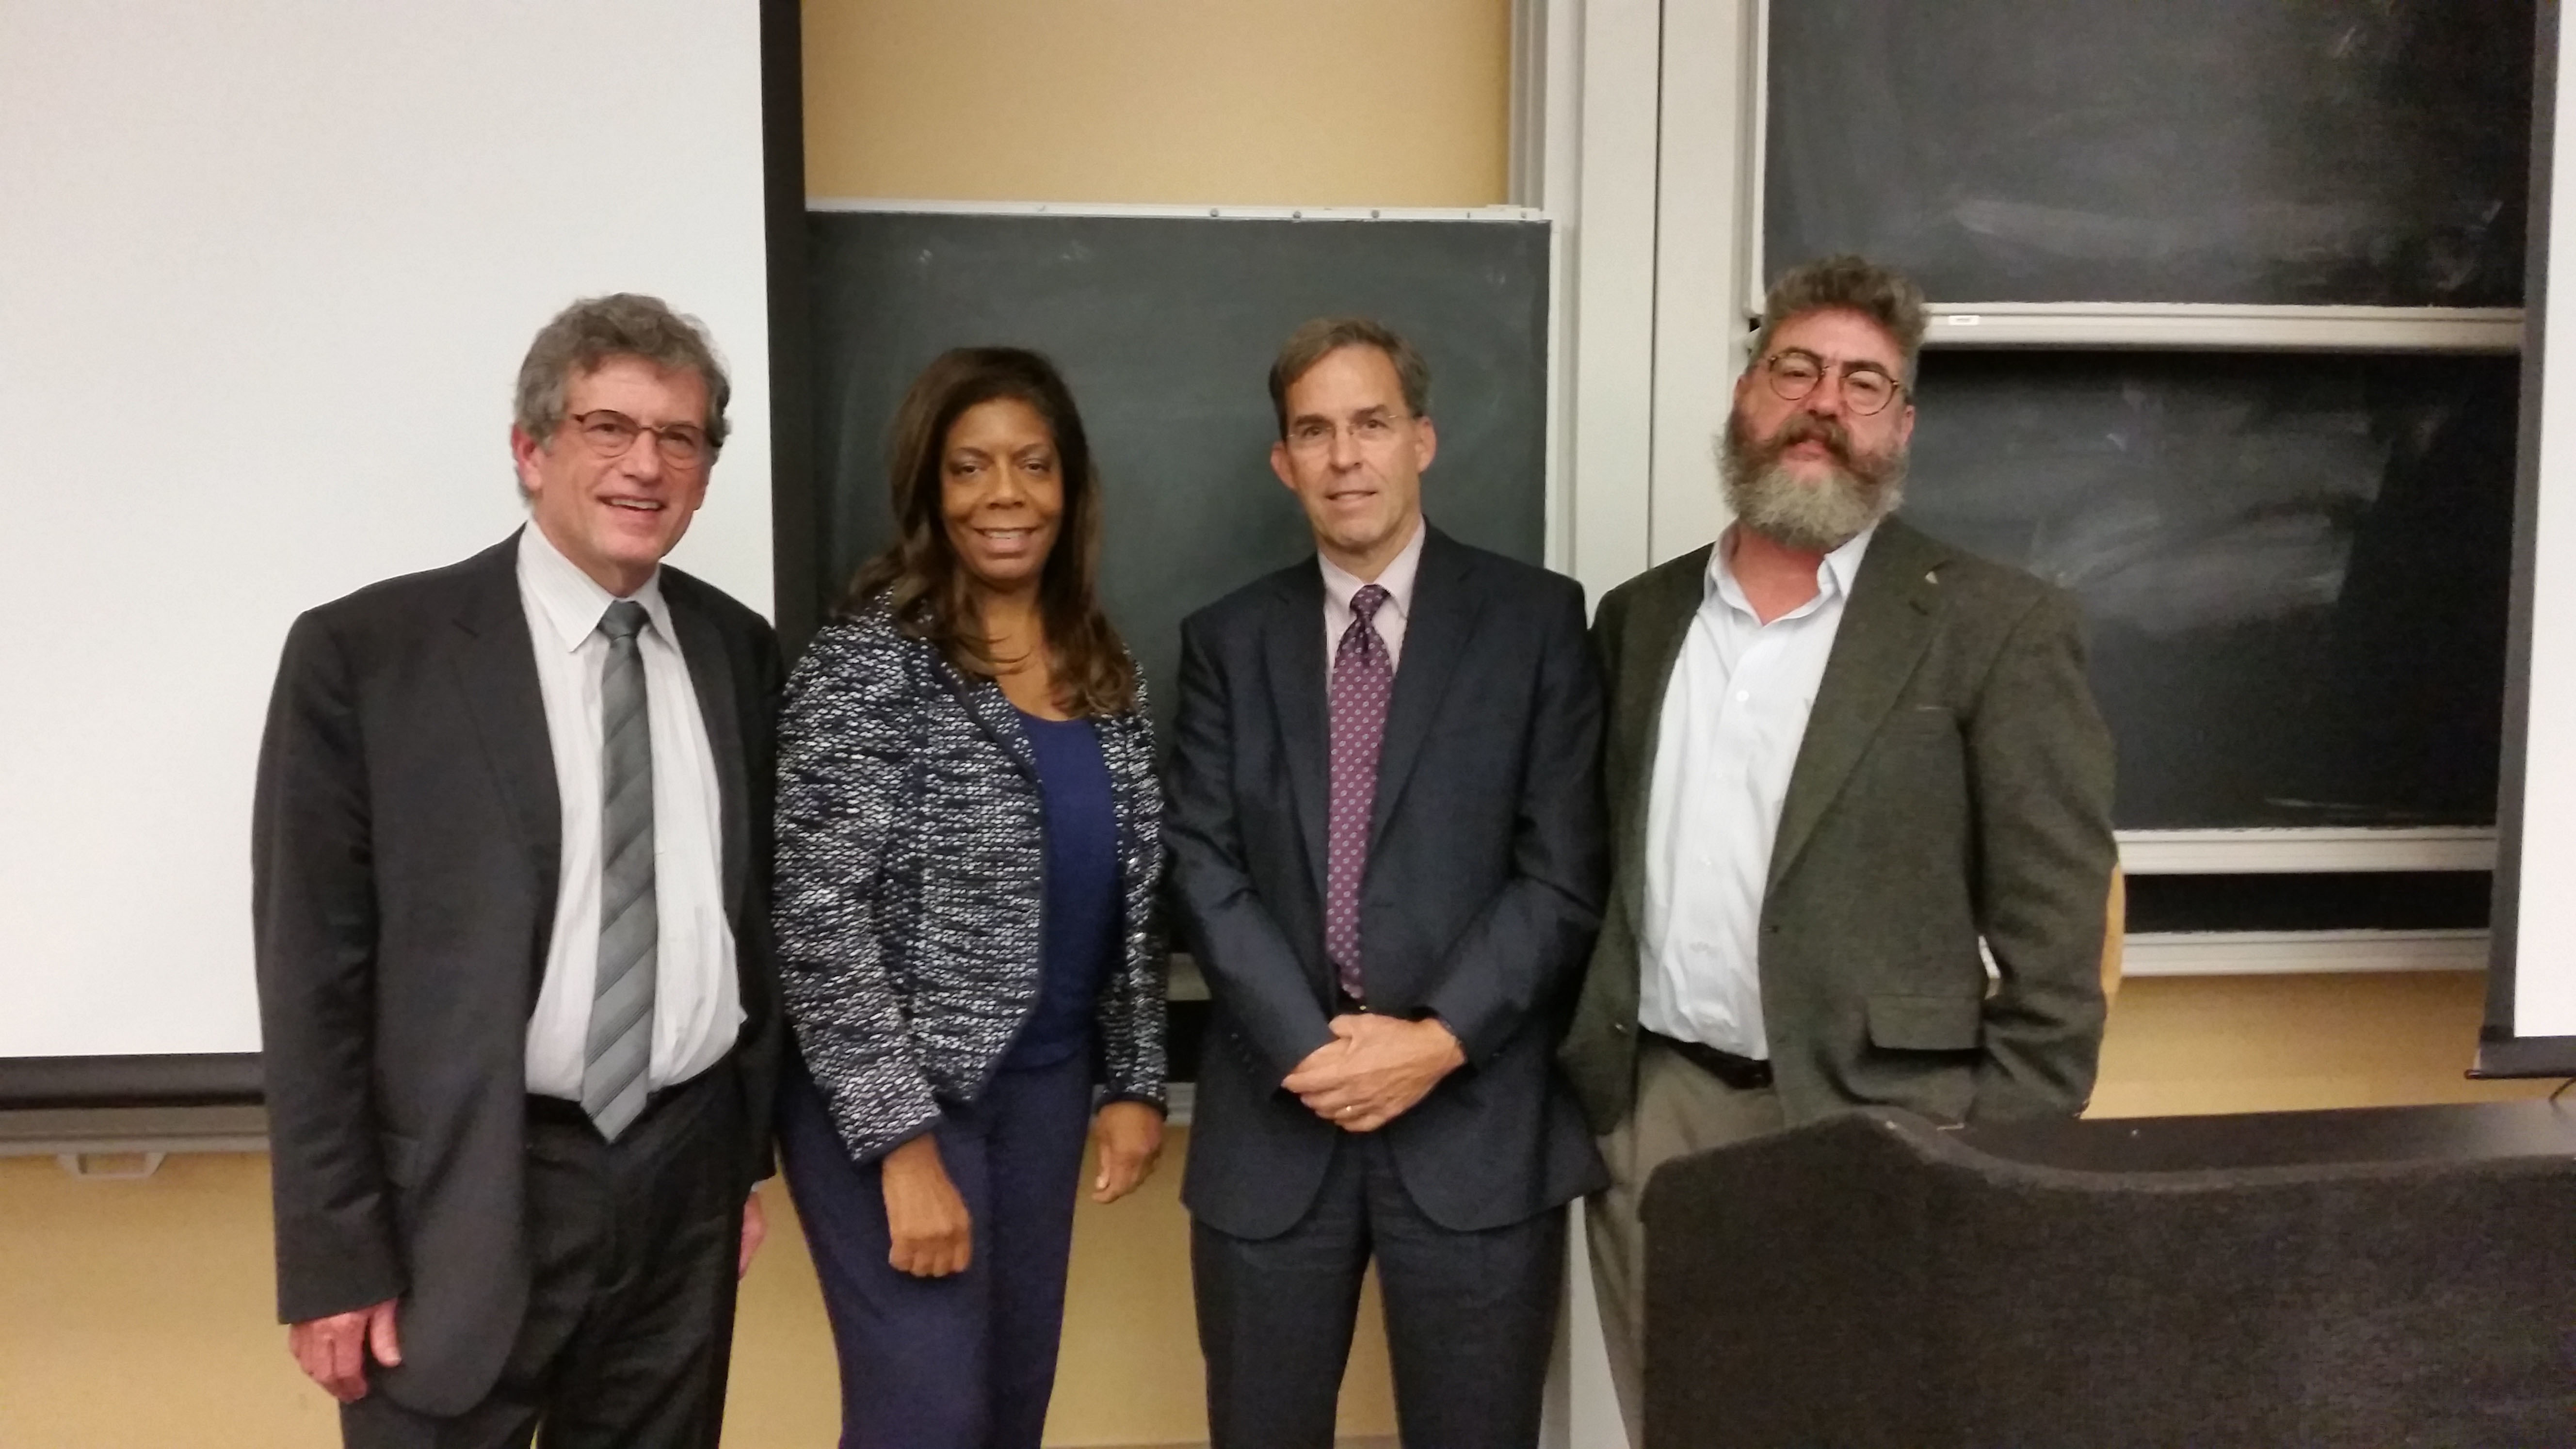 """Organizers of the event """"War and the Humanities"""" stand for a picture: David Shumway, Kiron Skinner, author Rick Atkinson, and Timothy Haggerty. (credit: Valene Mezmin/)"""